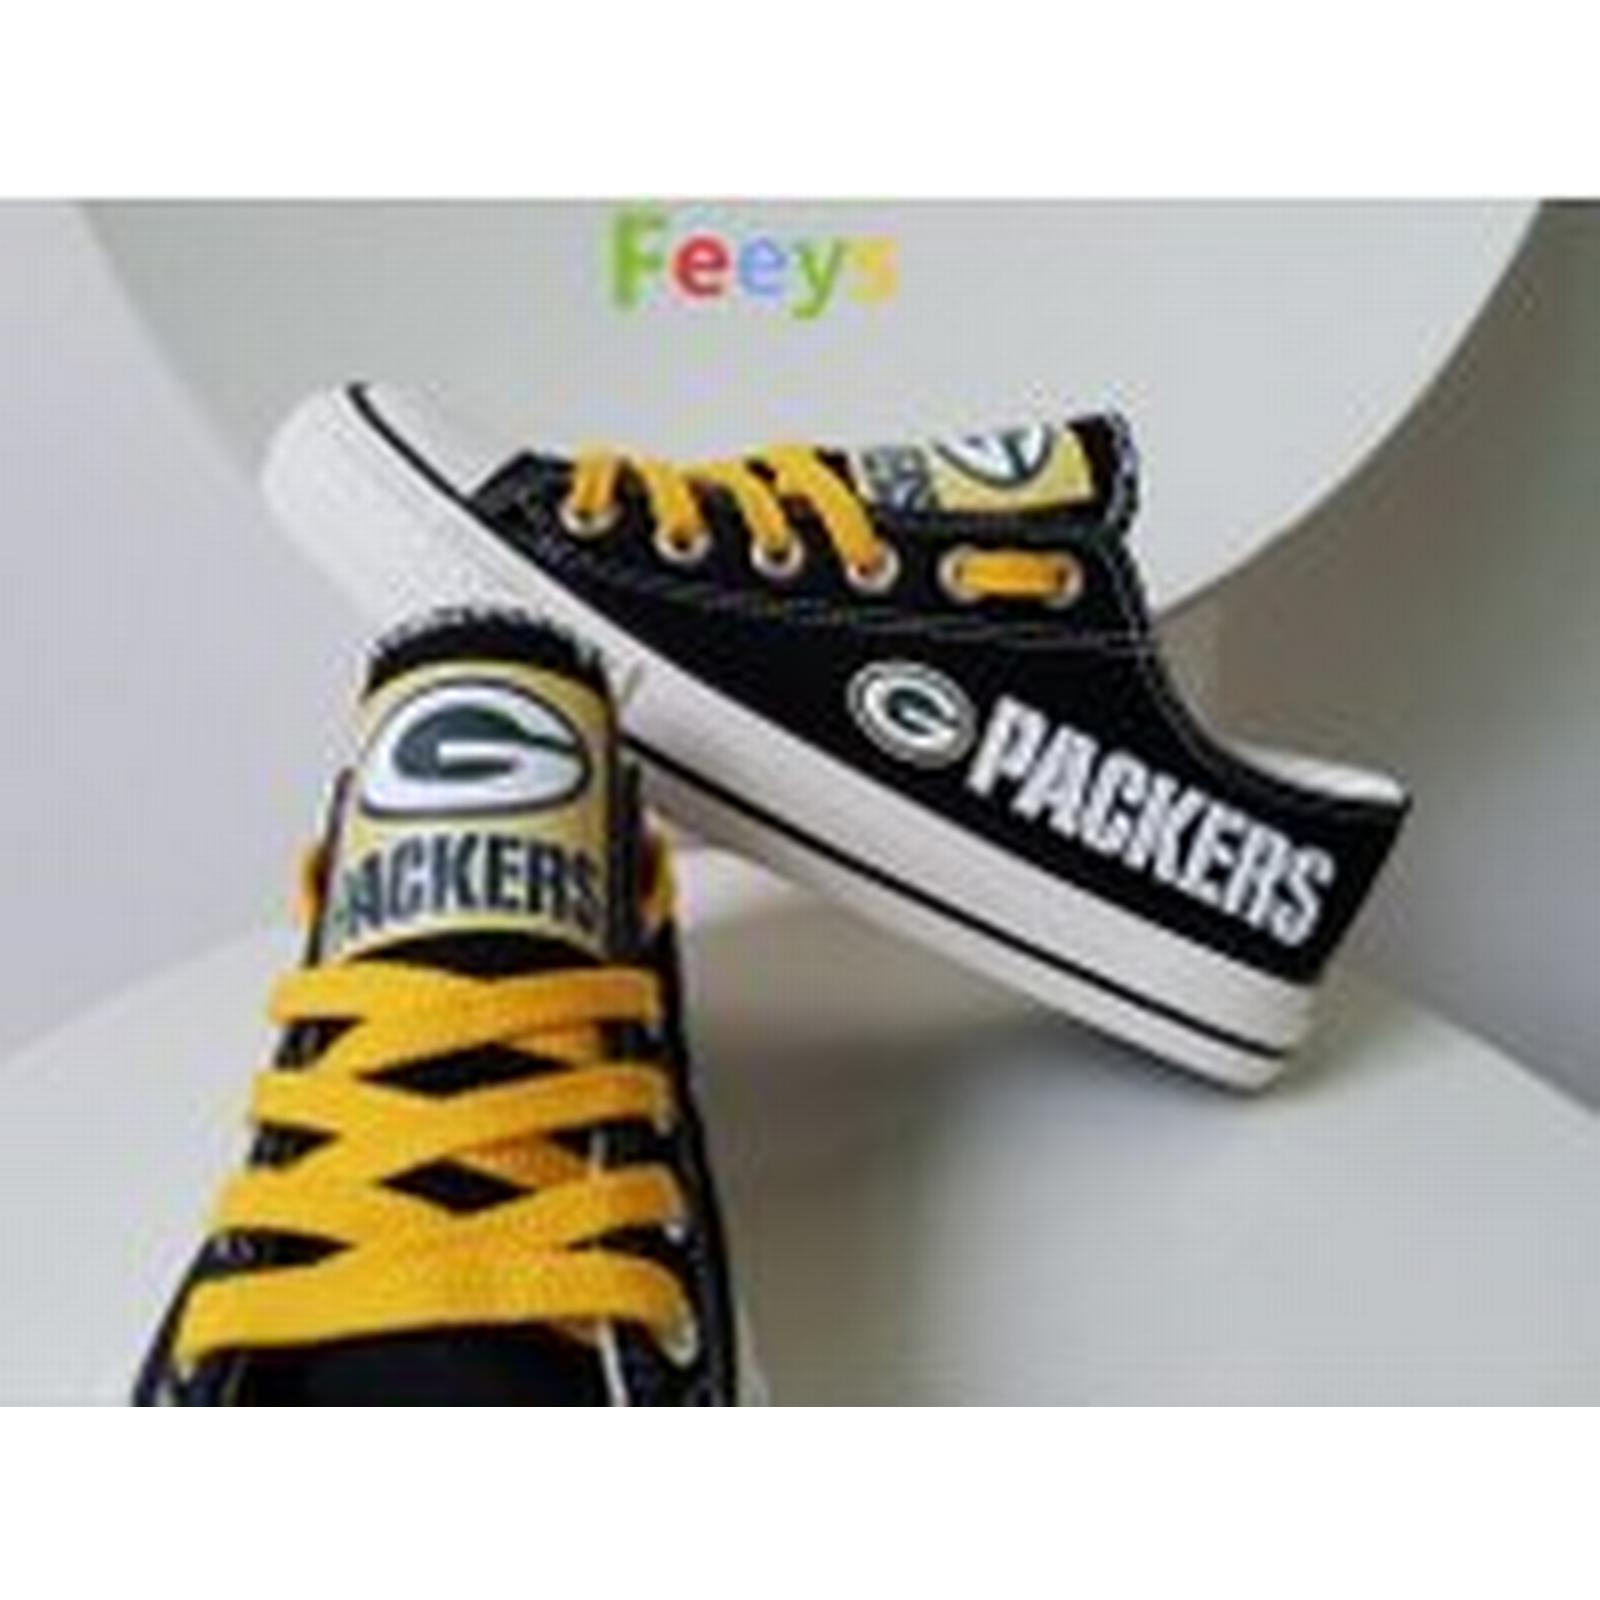 Bonanza (Global) Packers Green Bay Packers (Global) shoes Packers sneakers Fashion Christmas gift birthday gift H2 10ce81